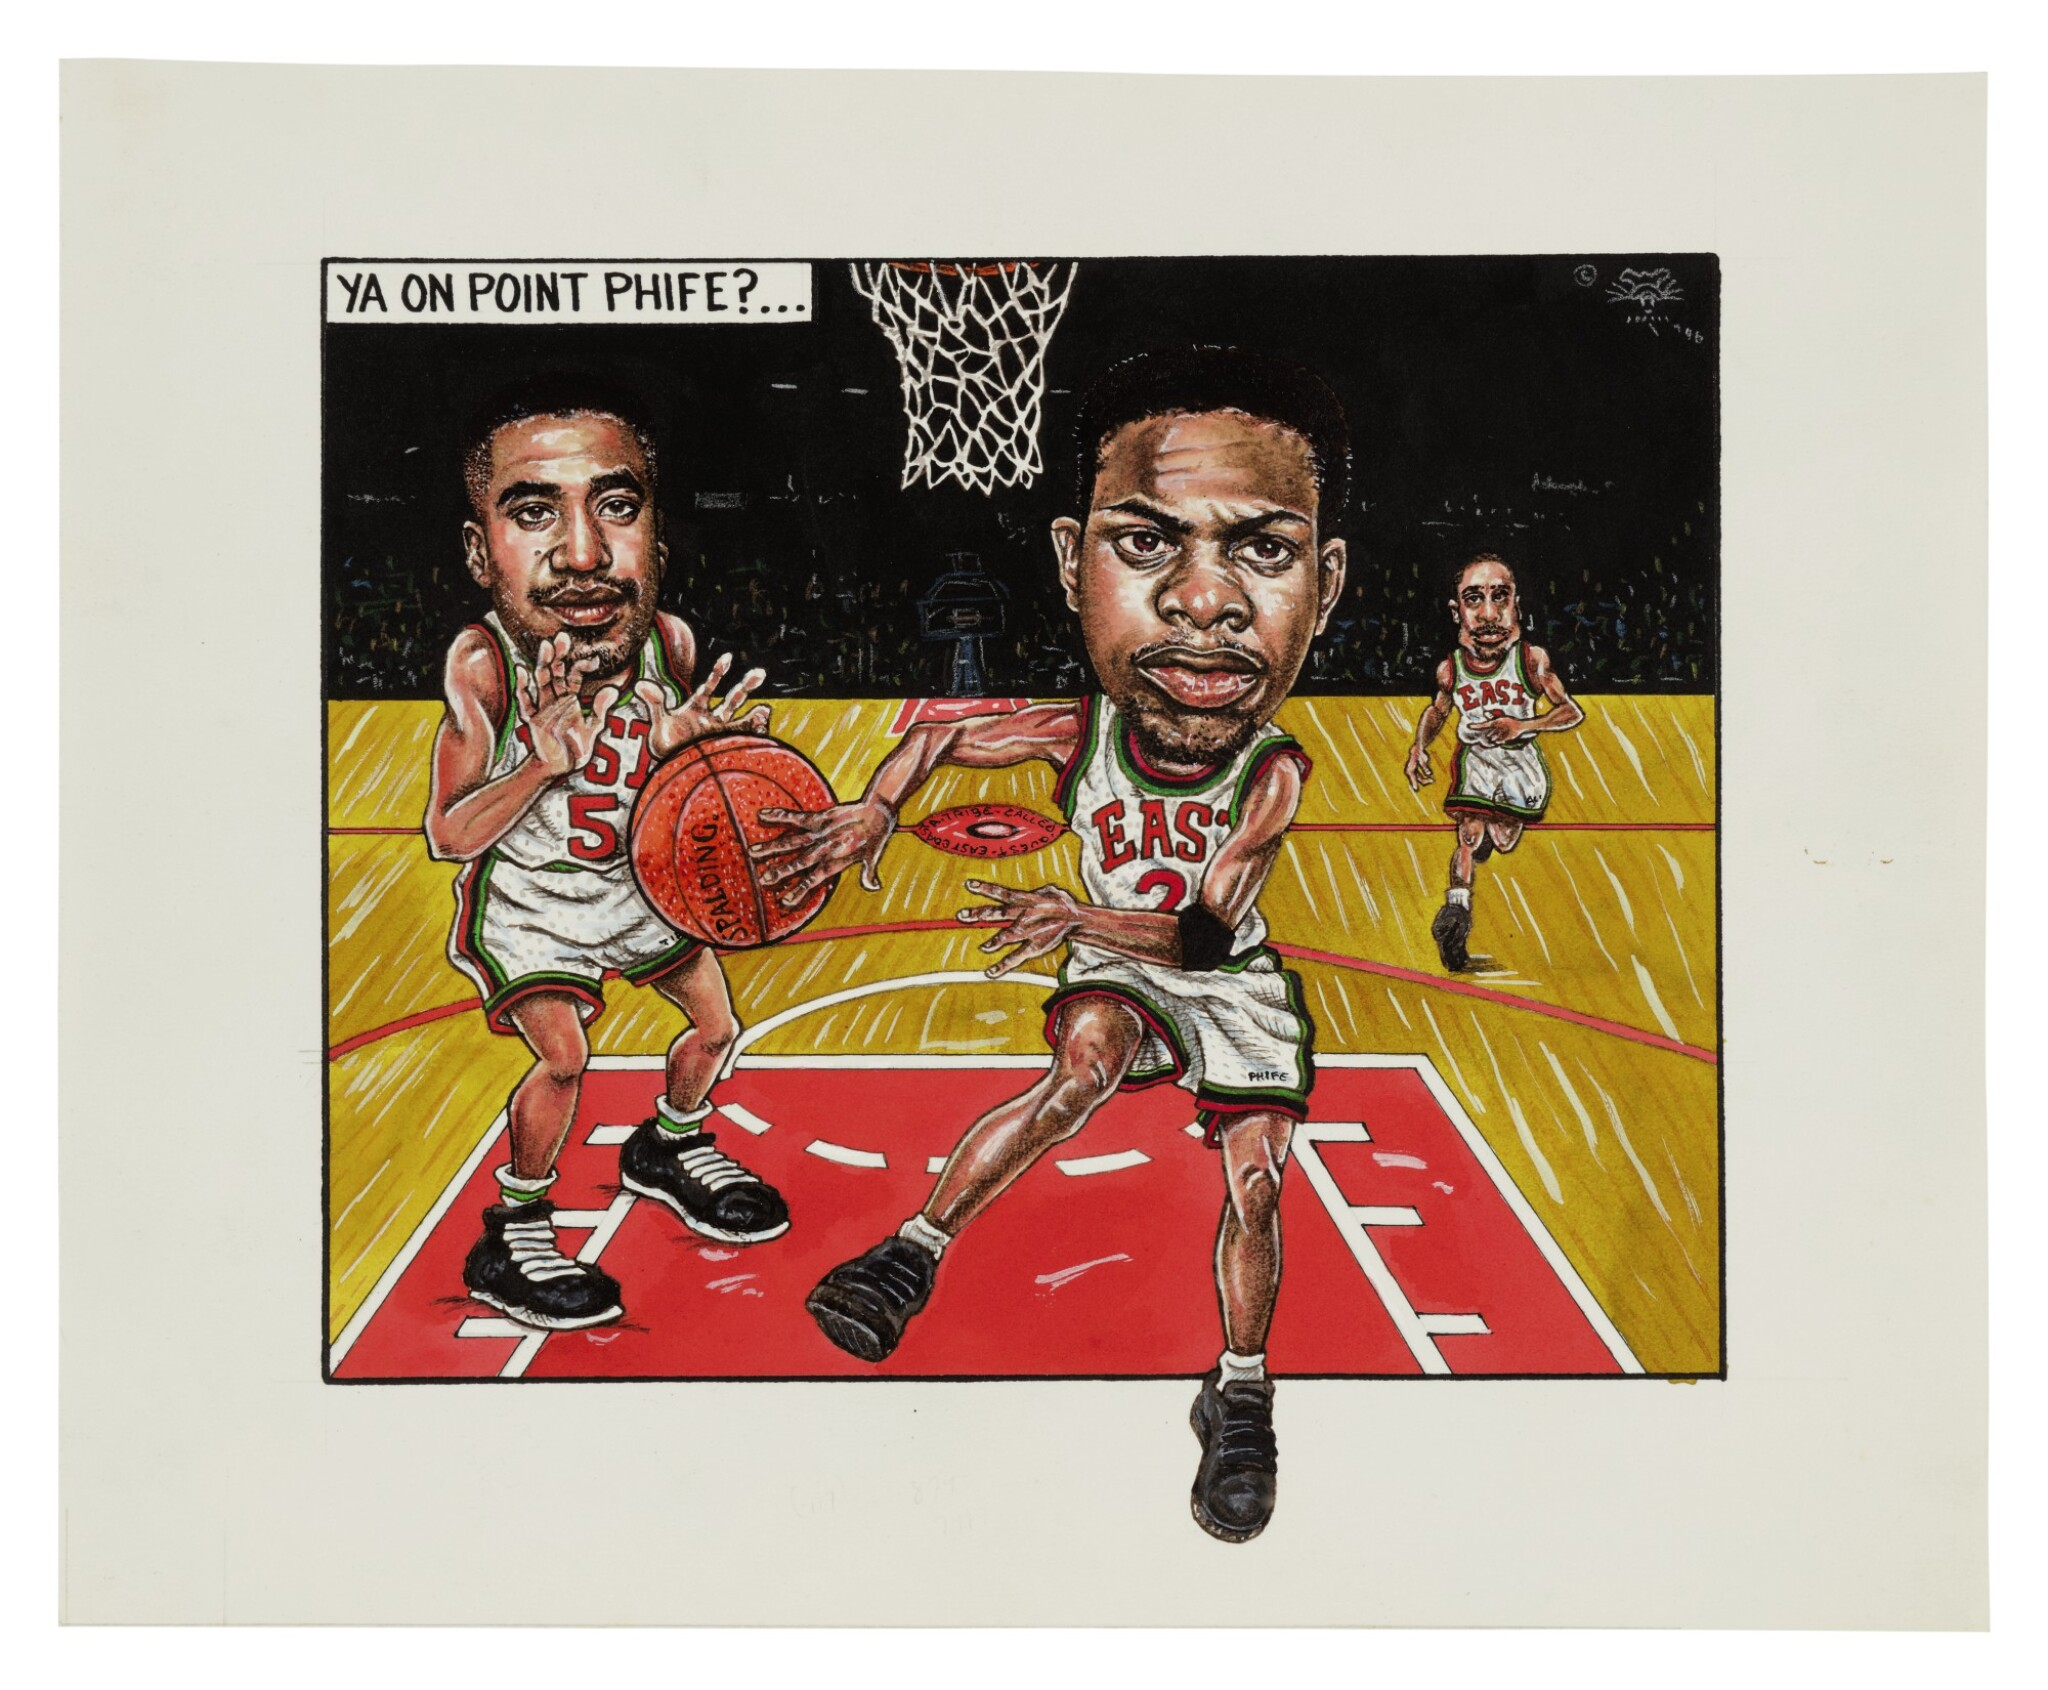 """View full screen - View 1 of Lot 107. ANDRÉ LEROY DAVIS 